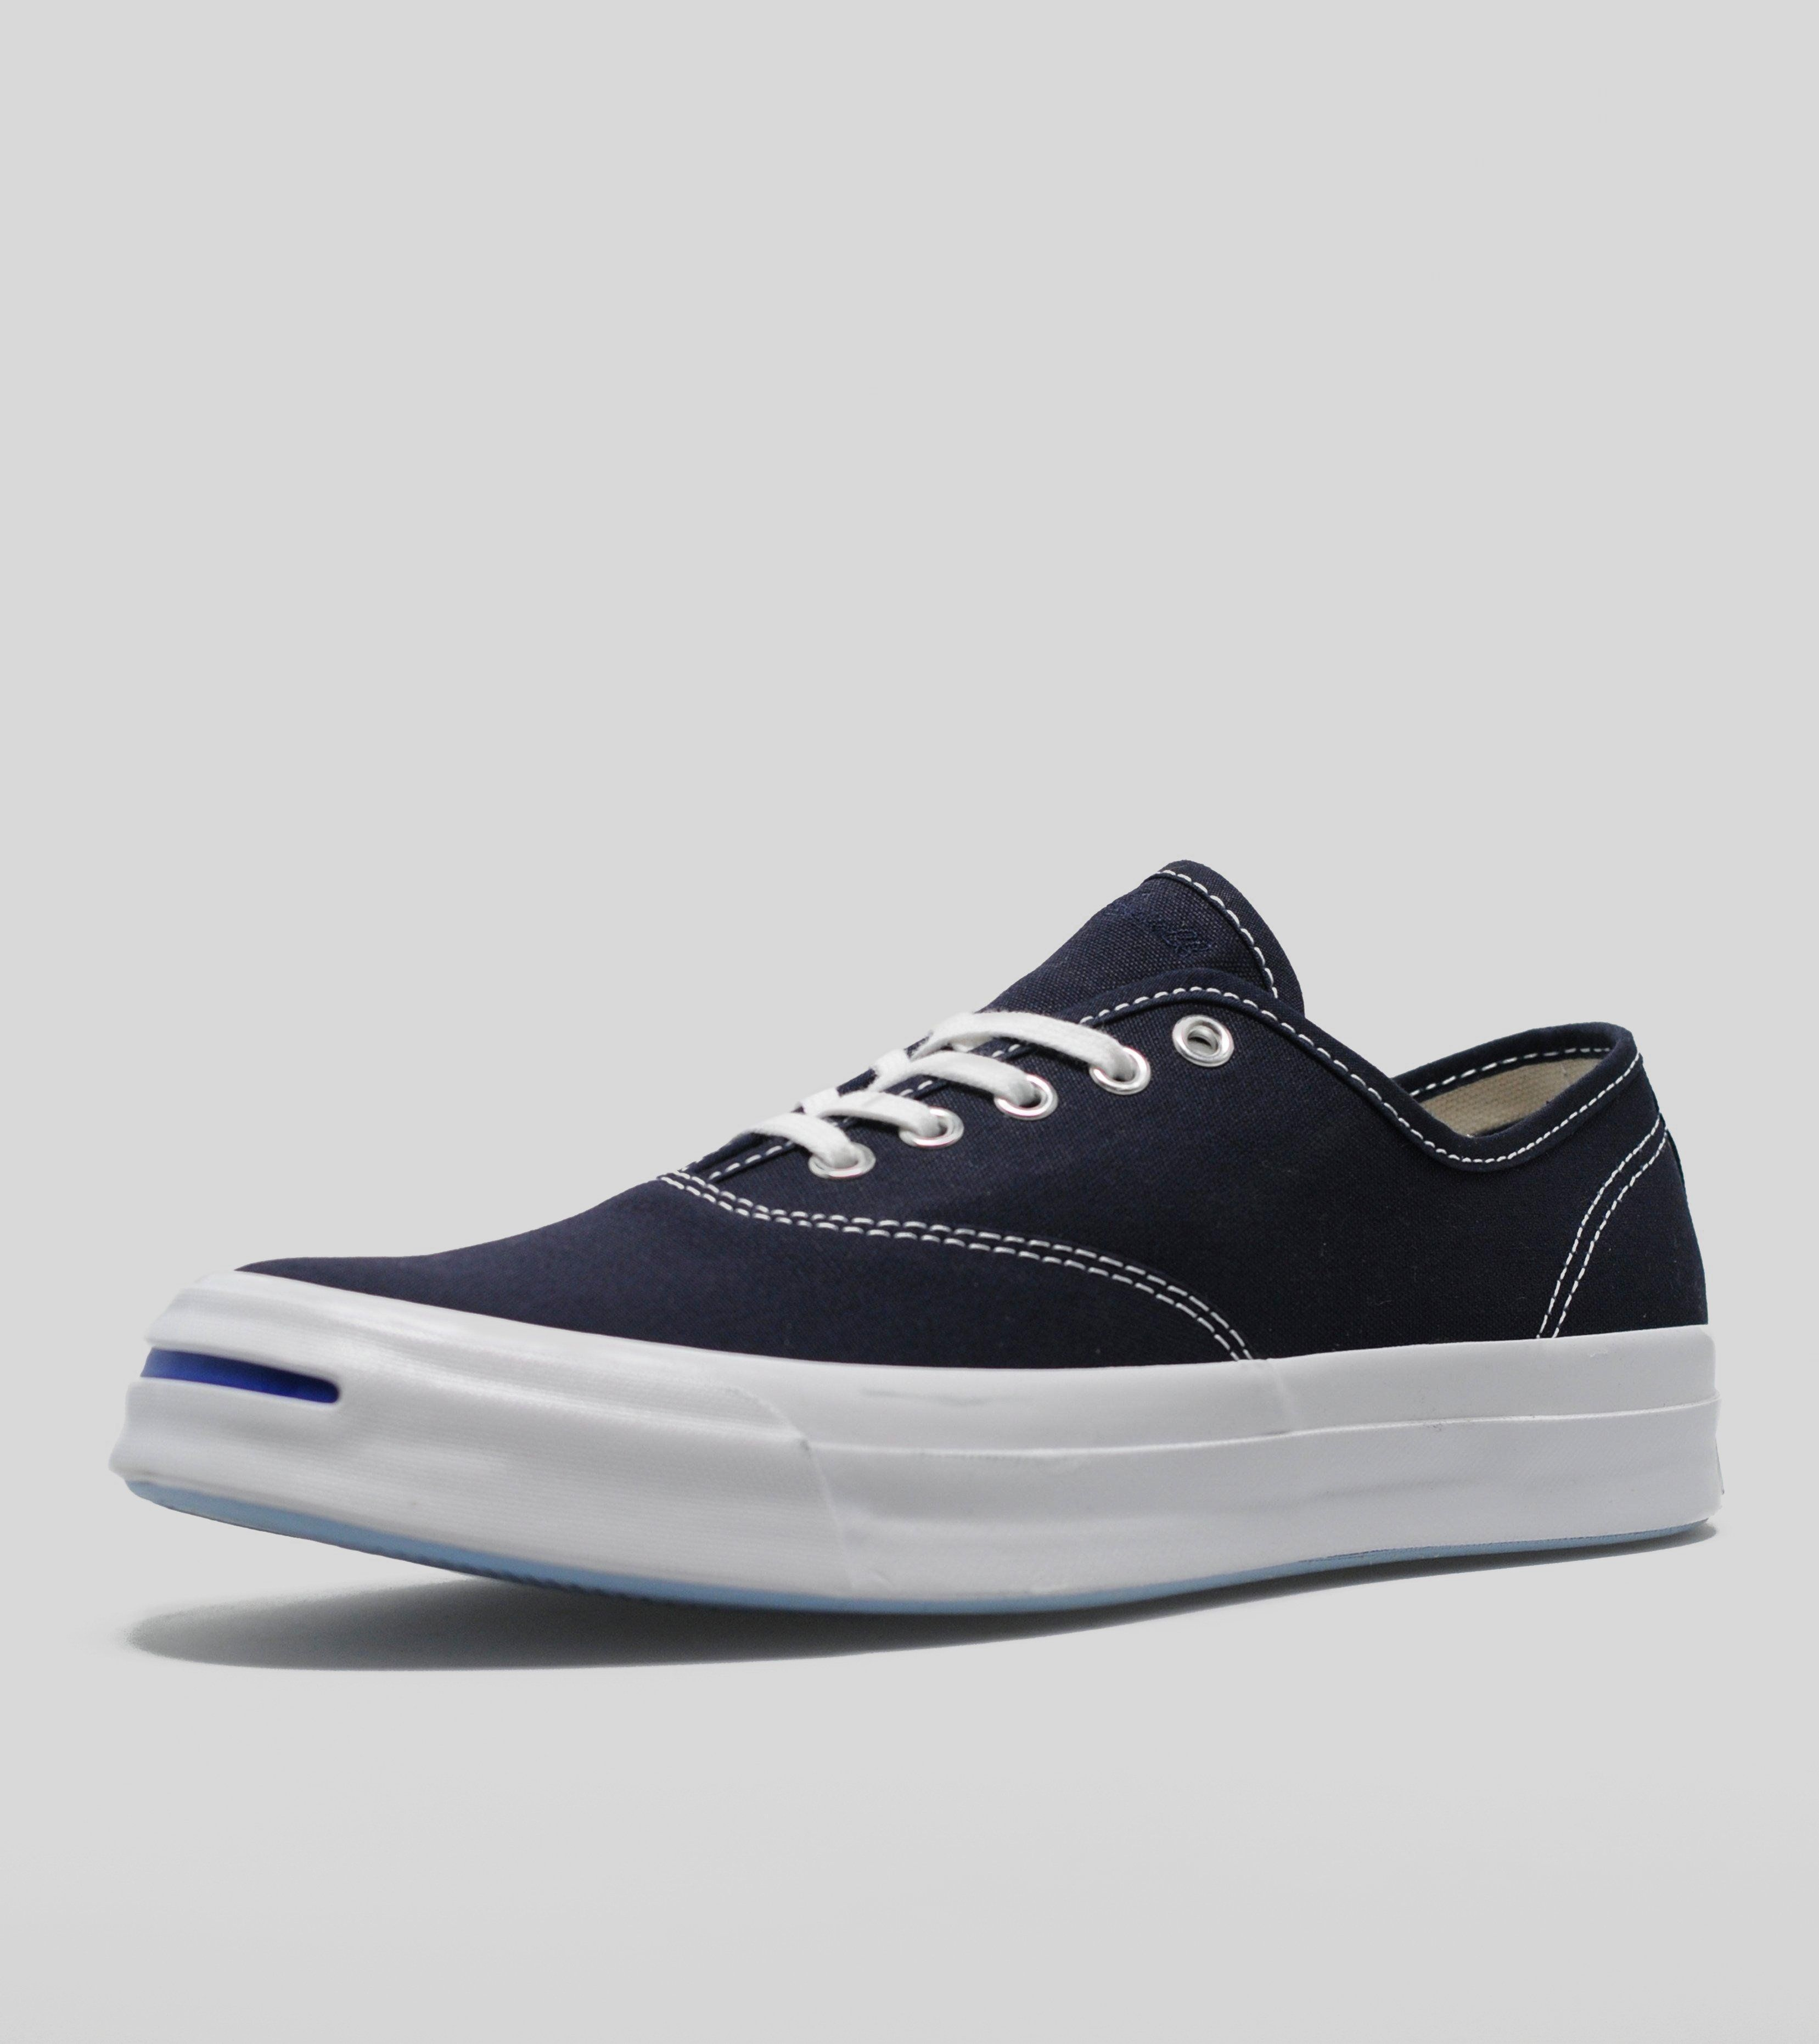 converse clothing online